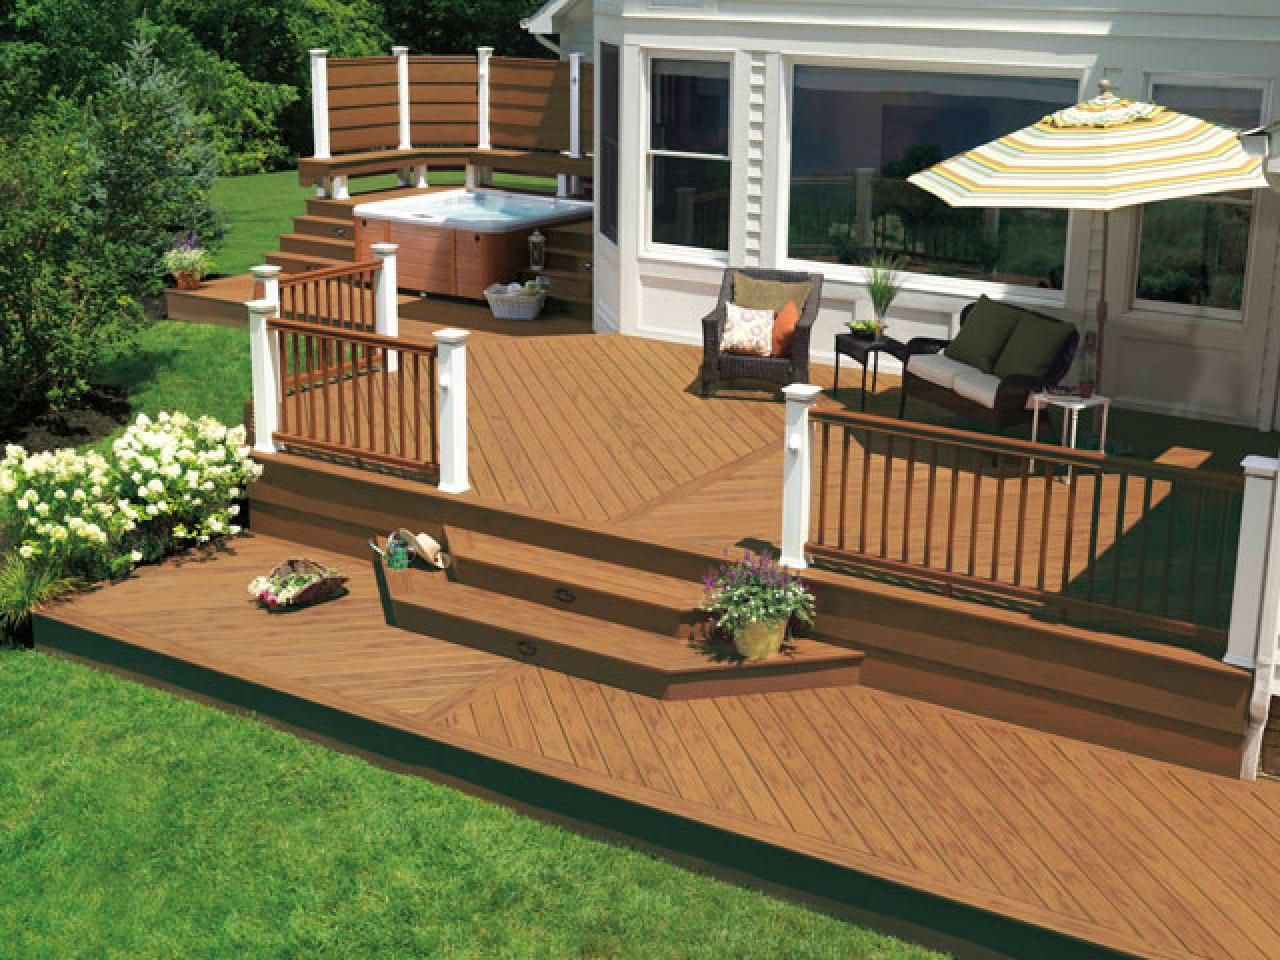 Designer Decks Made From Natural Wood, Composite and Aluminum ...